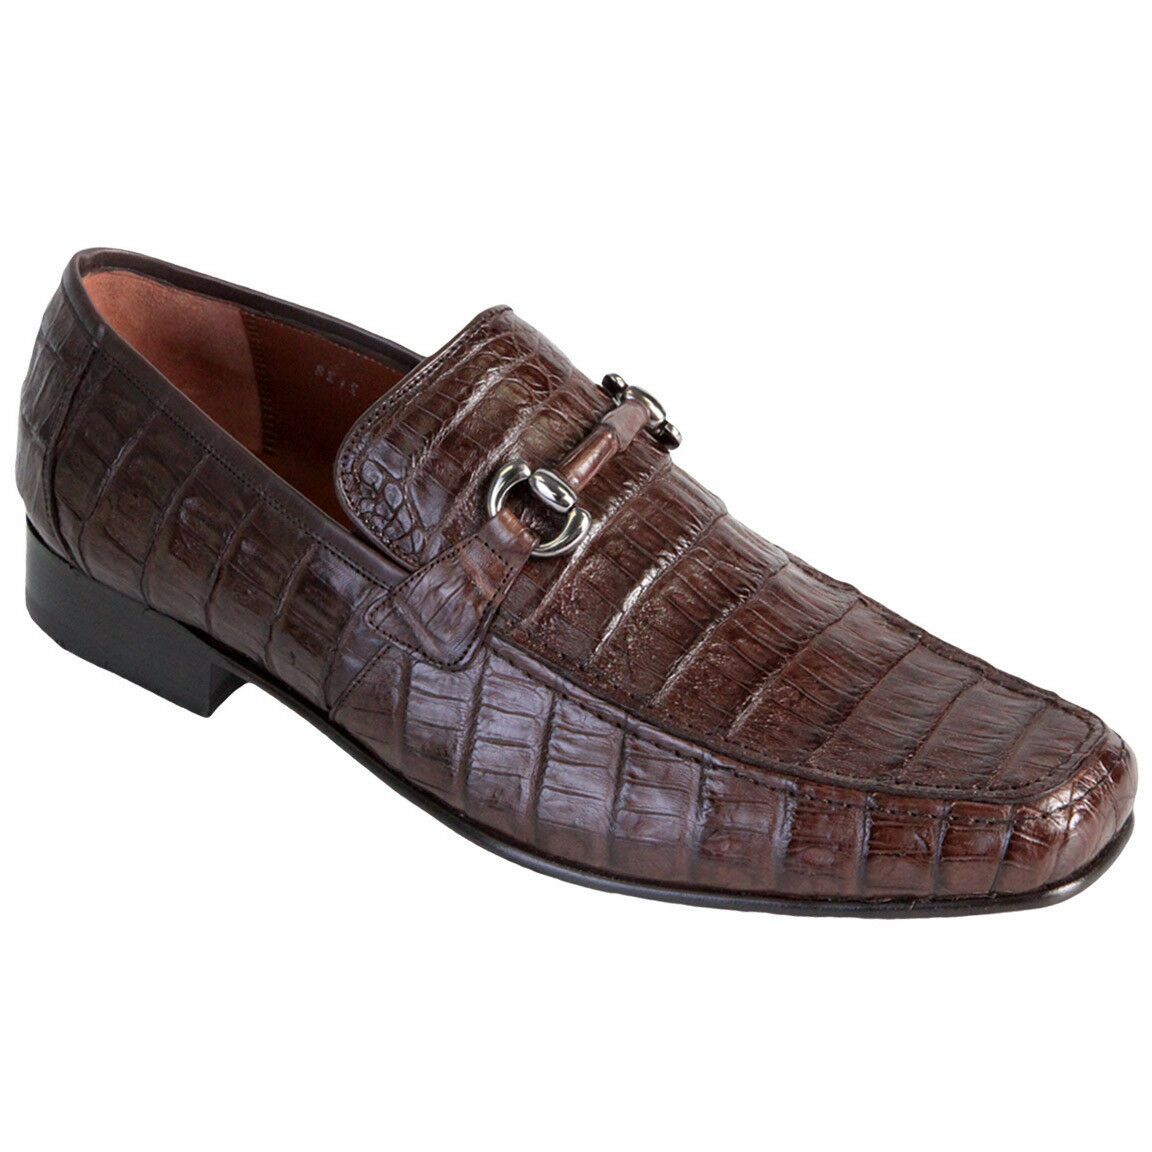 Los Altos Men's Genuine Caiman Belly Dress scarpe Slip On Casual Loafer Handmade